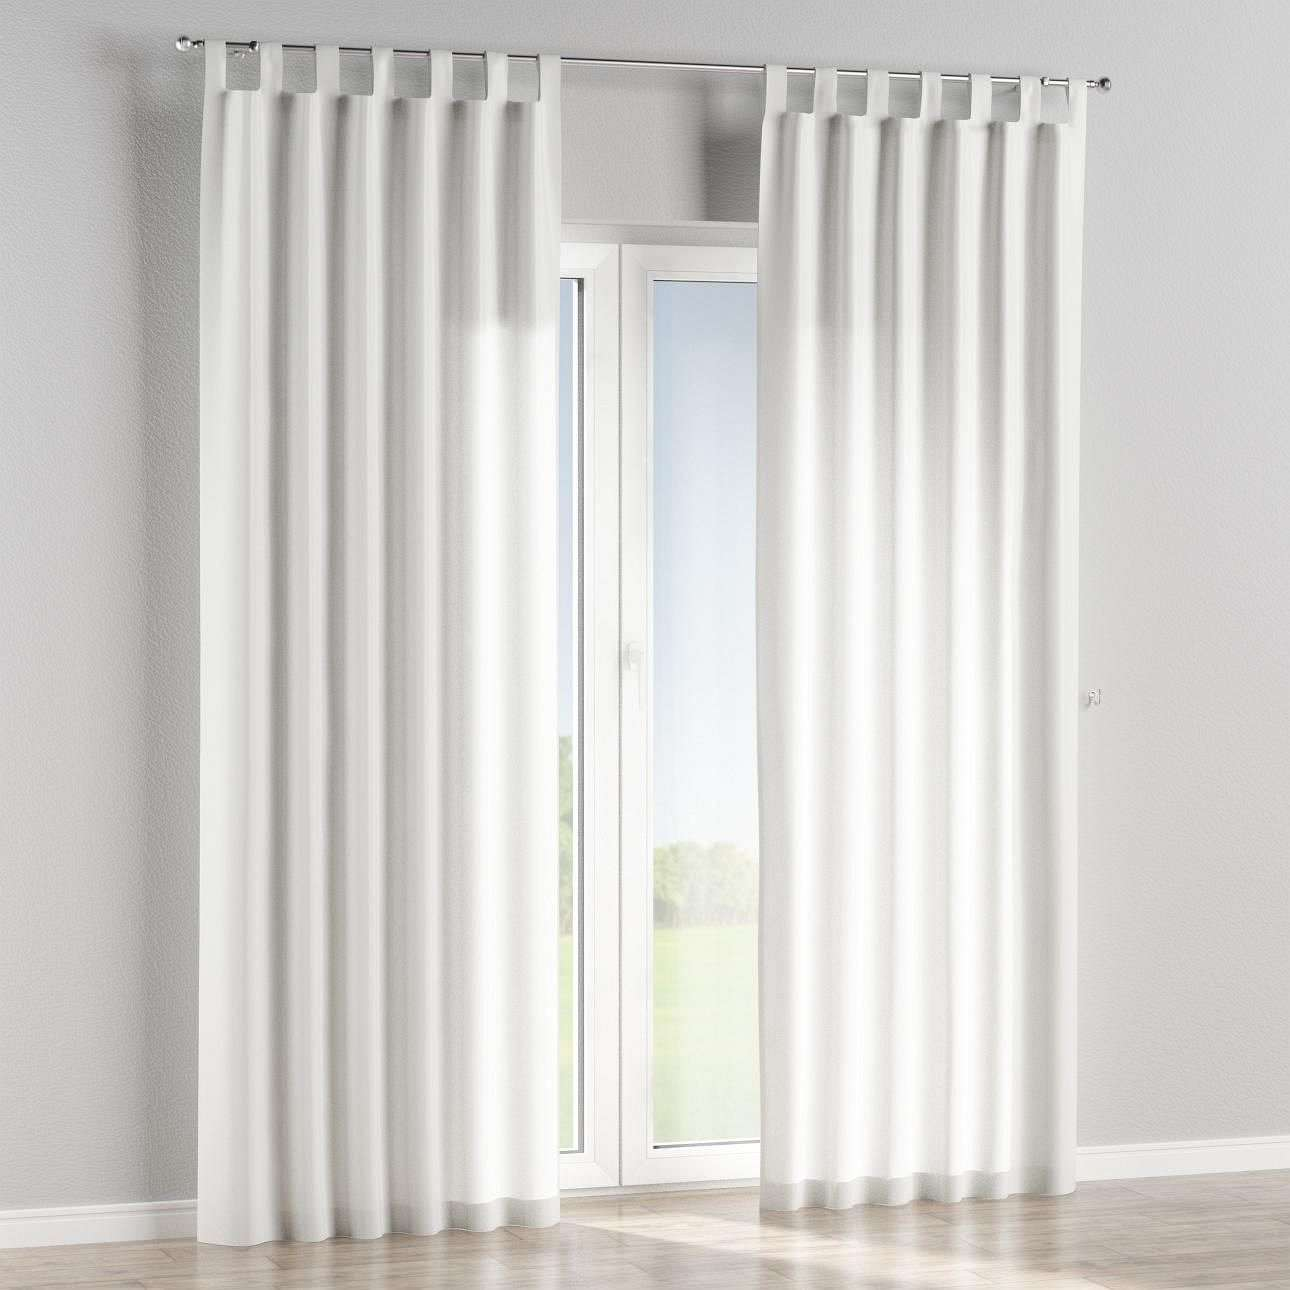 Tab top curtains in collection New Art, fabric: 140-26